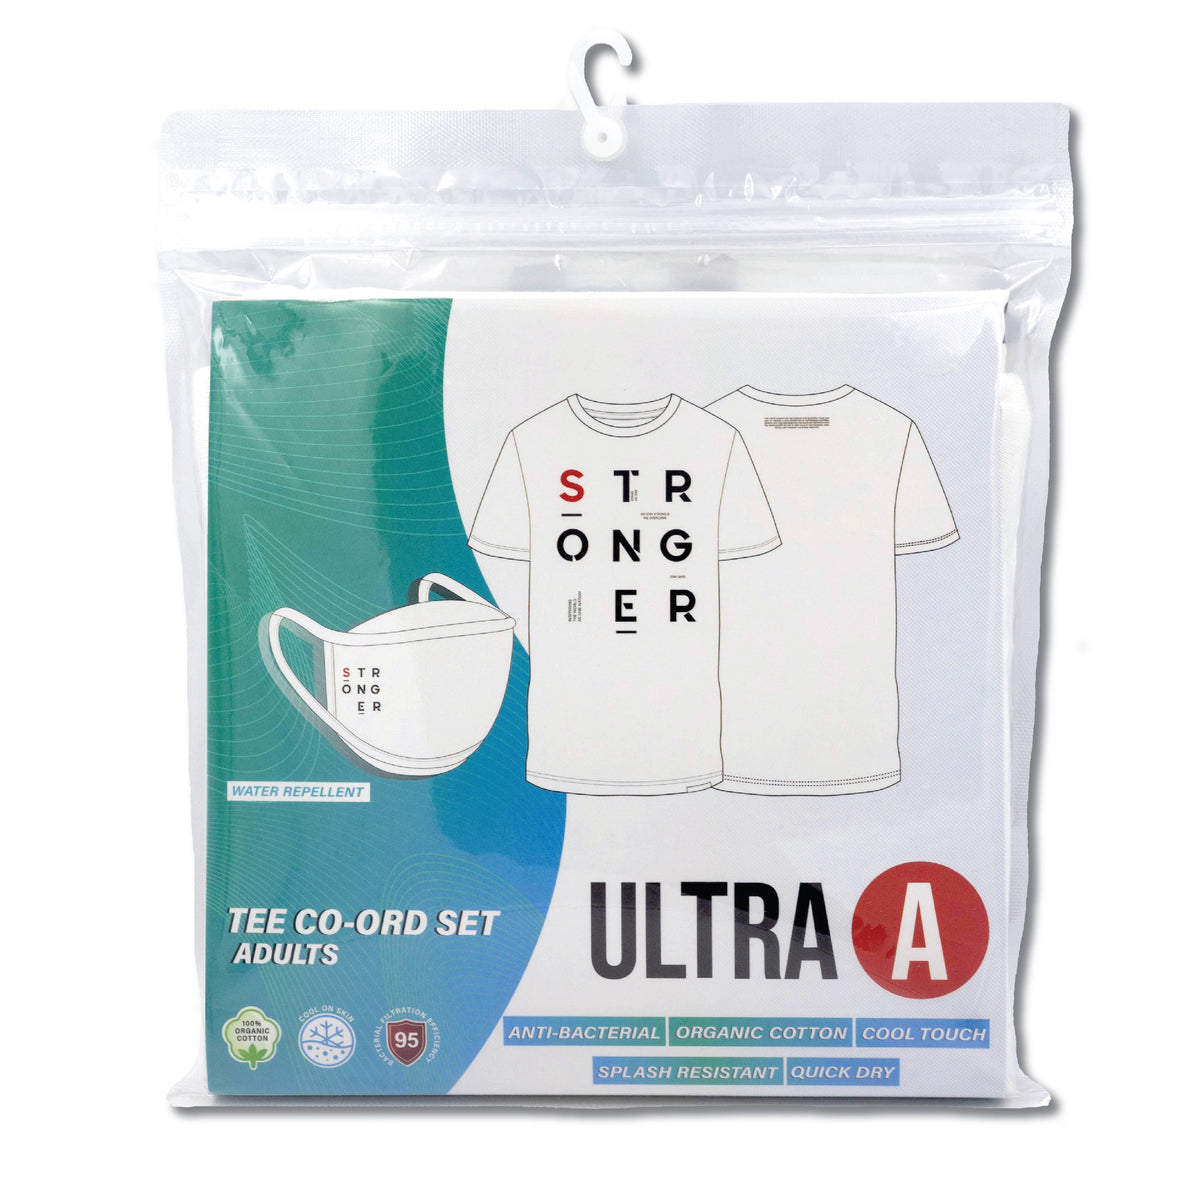 Anti-Bacterial Unisex Tee + 3-Ply Anti-Bacterial Mask Co-Ord Set (Stronger - Adults)